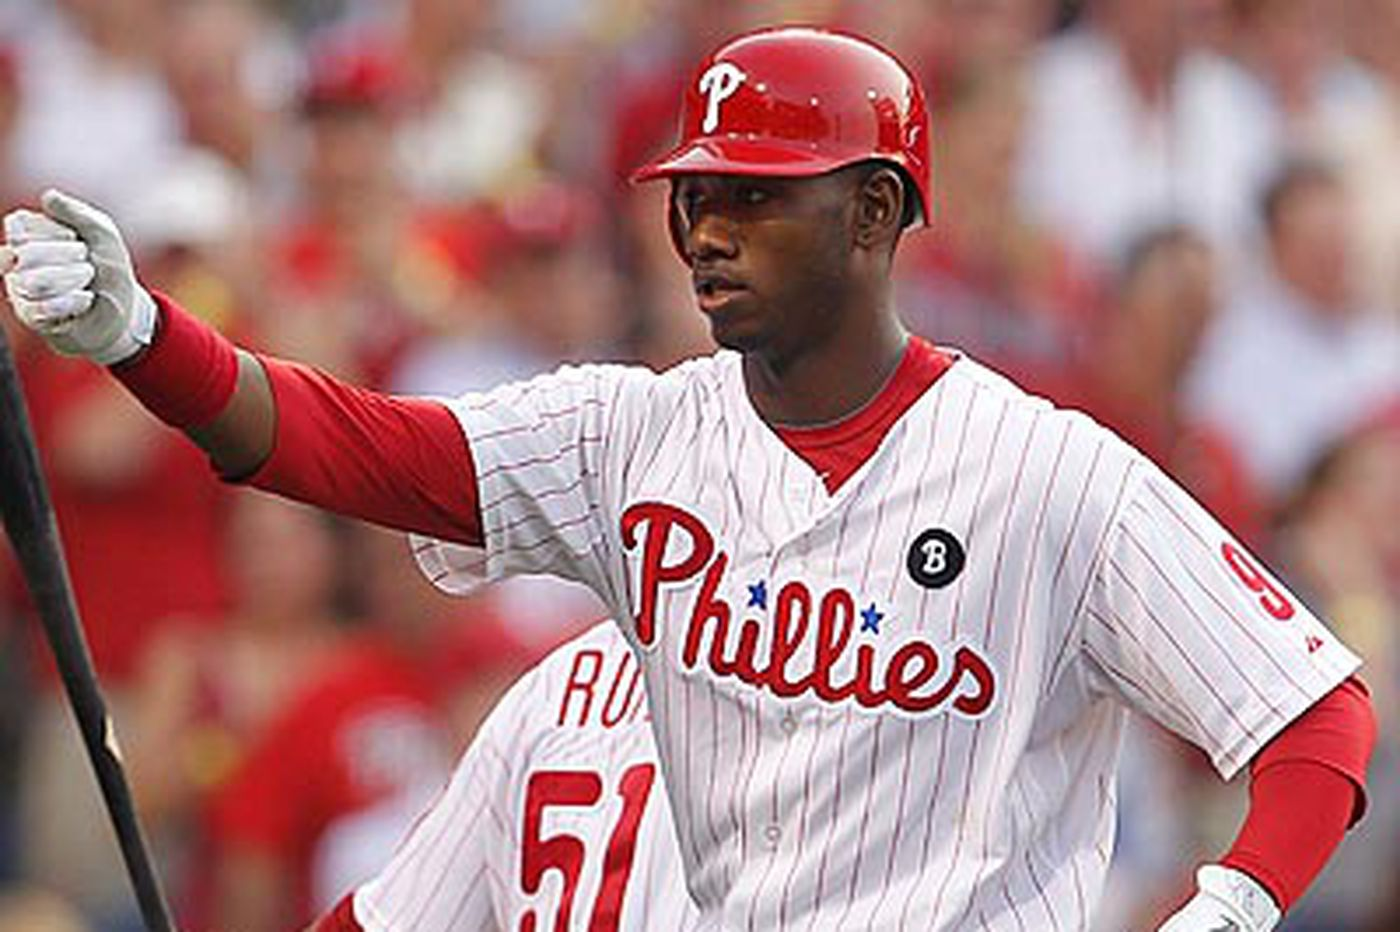 Phillies Notebook: Phillies' focus on 2012, and beyond